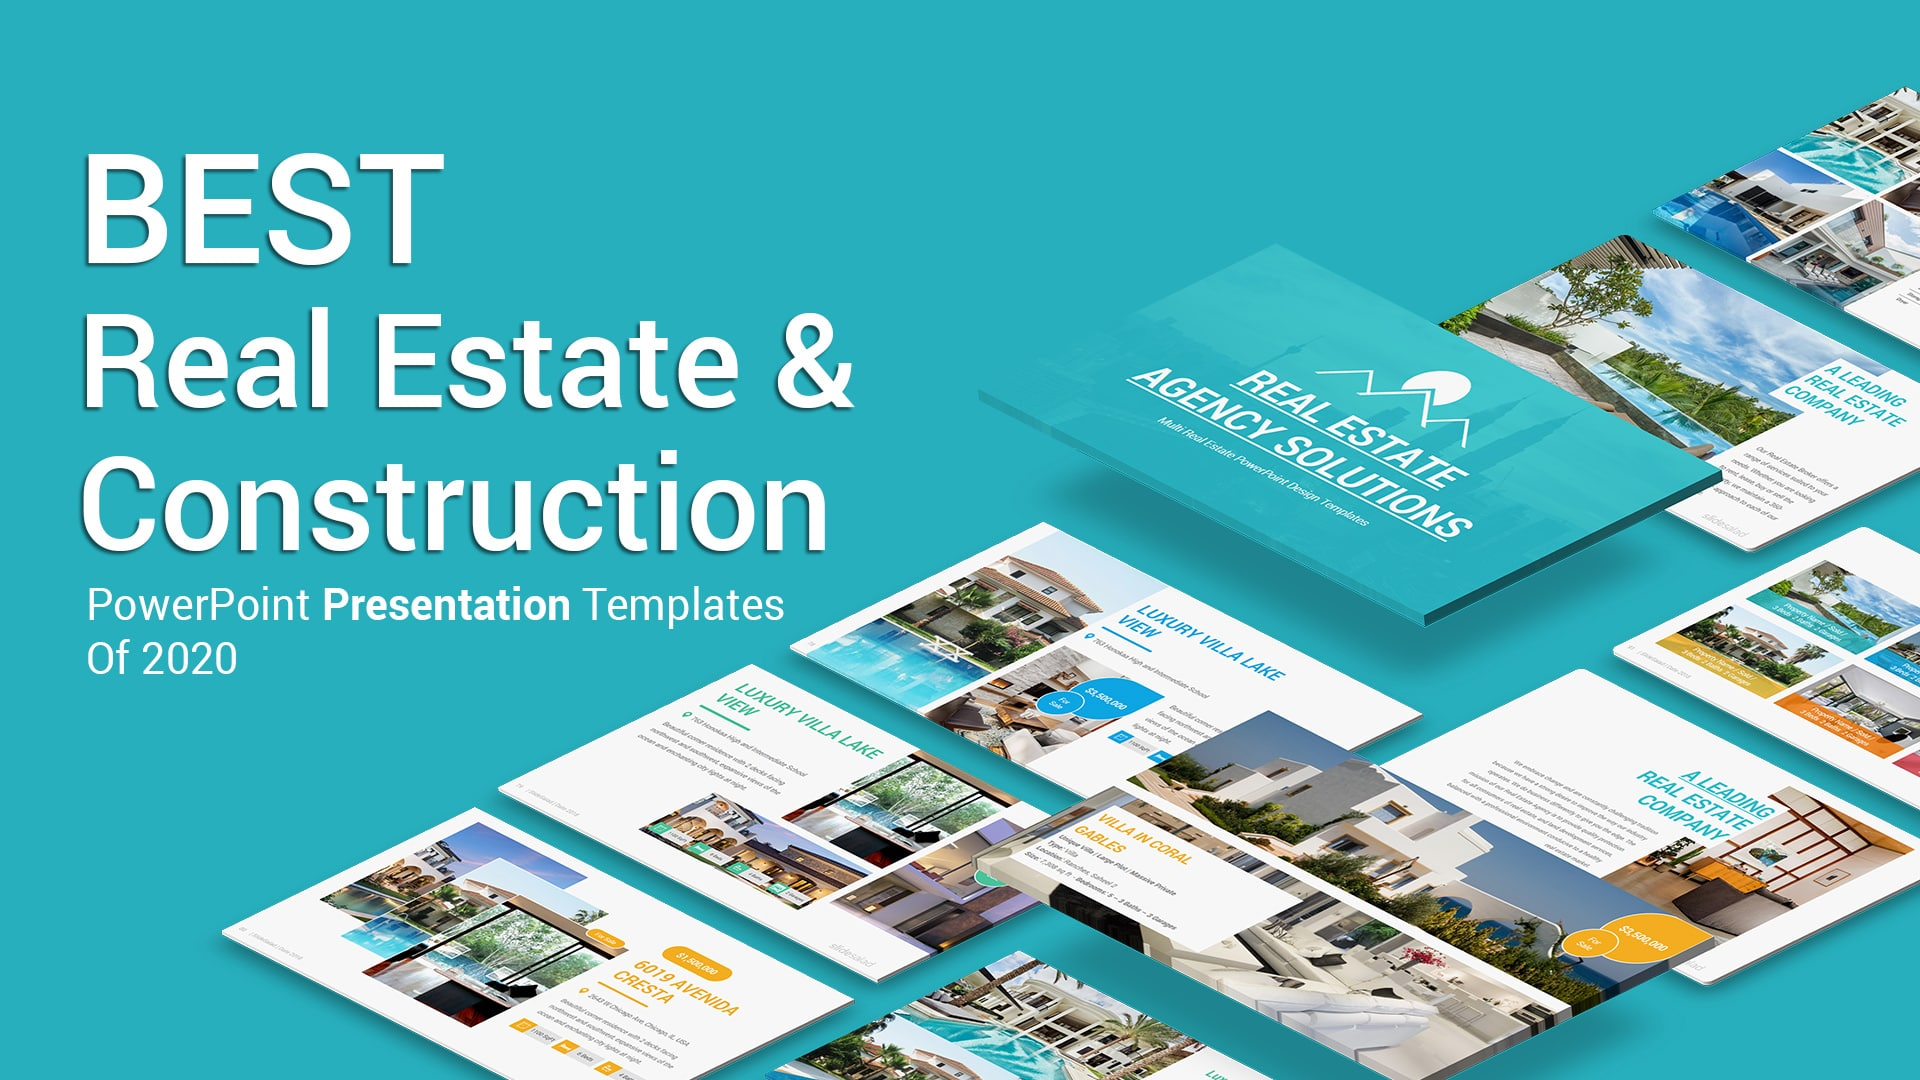 10+ Best Real Estate and Construction PowerPoint PPT Templates for Marketing Listings in 2020